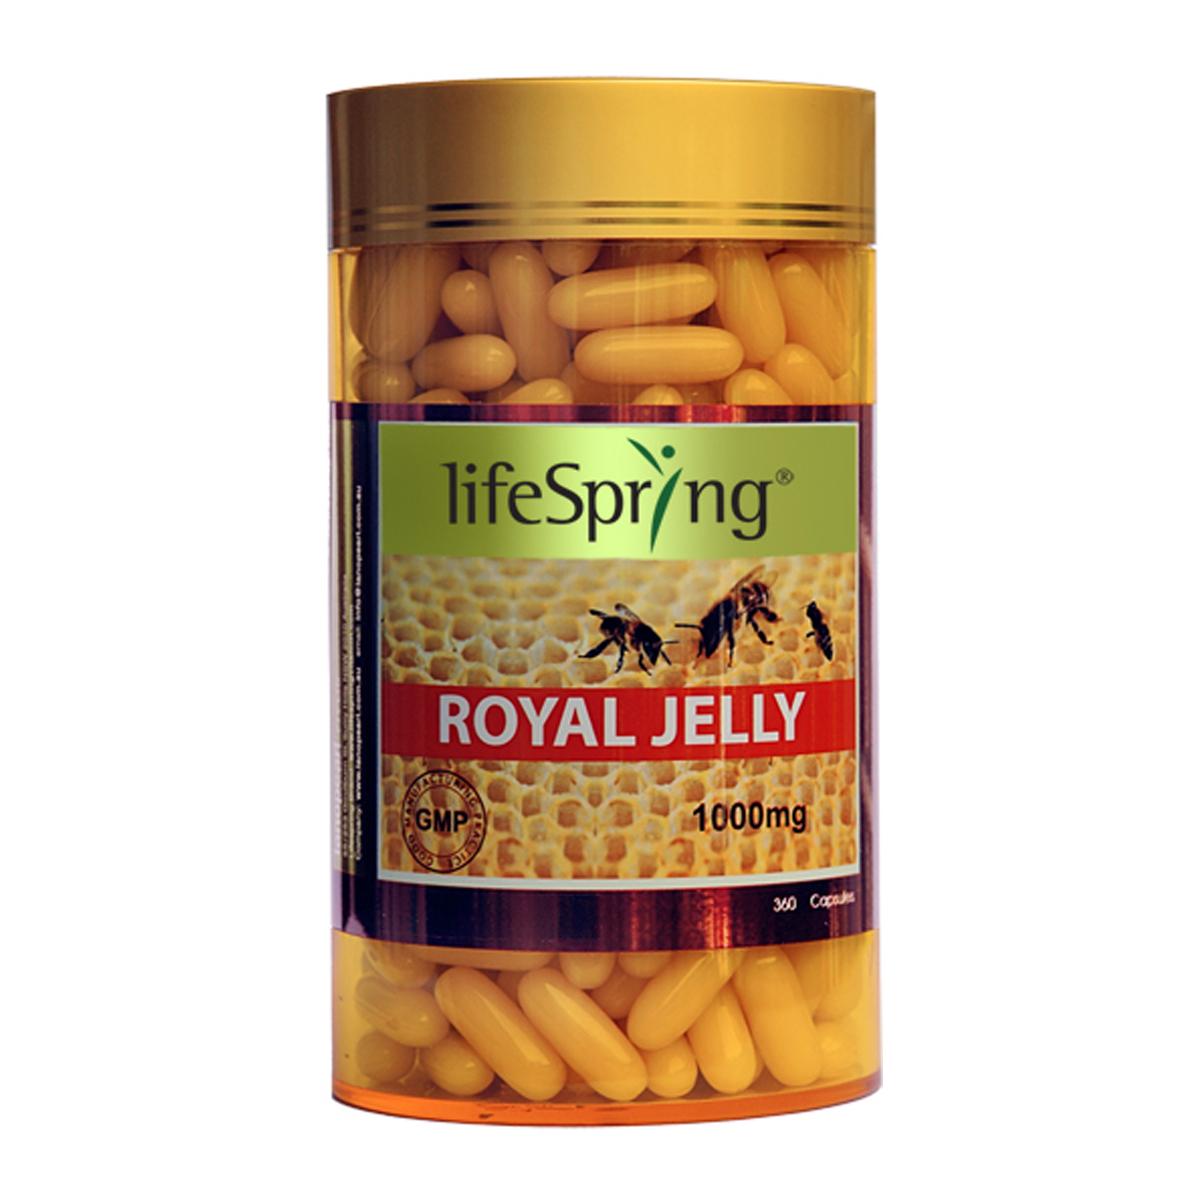 [LifeSpring] Sữa ong chúa LifeSpring Royal Jelly 1000mg - 360 viên